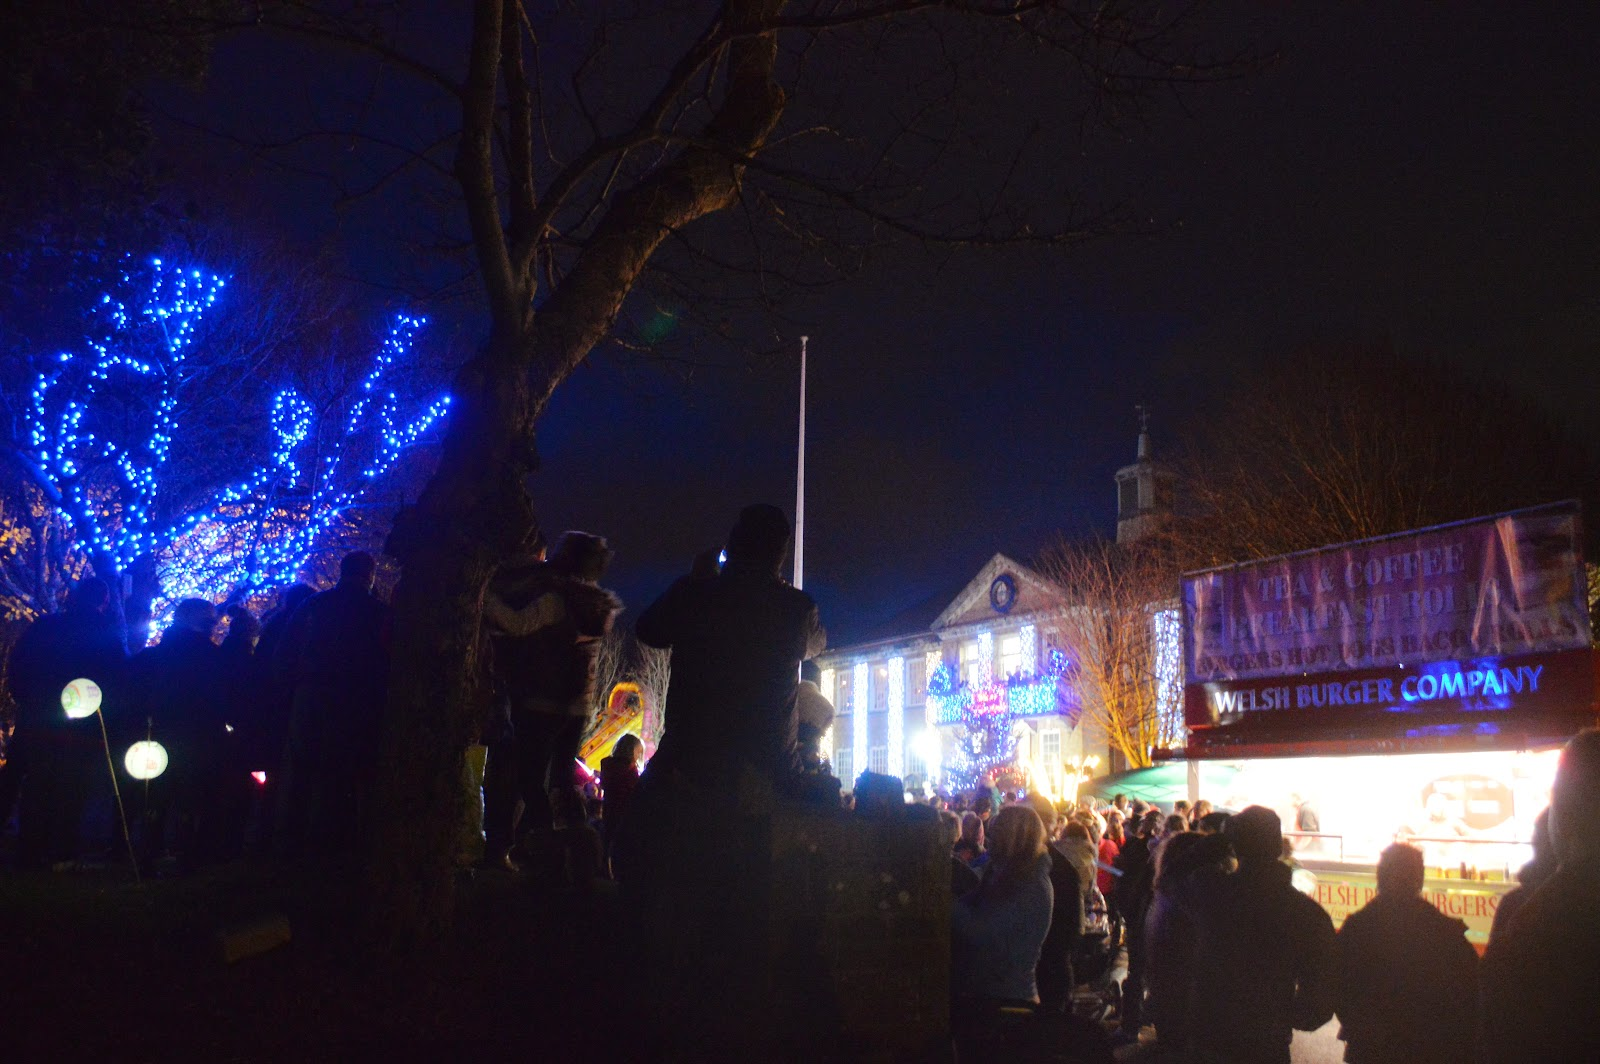 The lantern parade Christmas lights